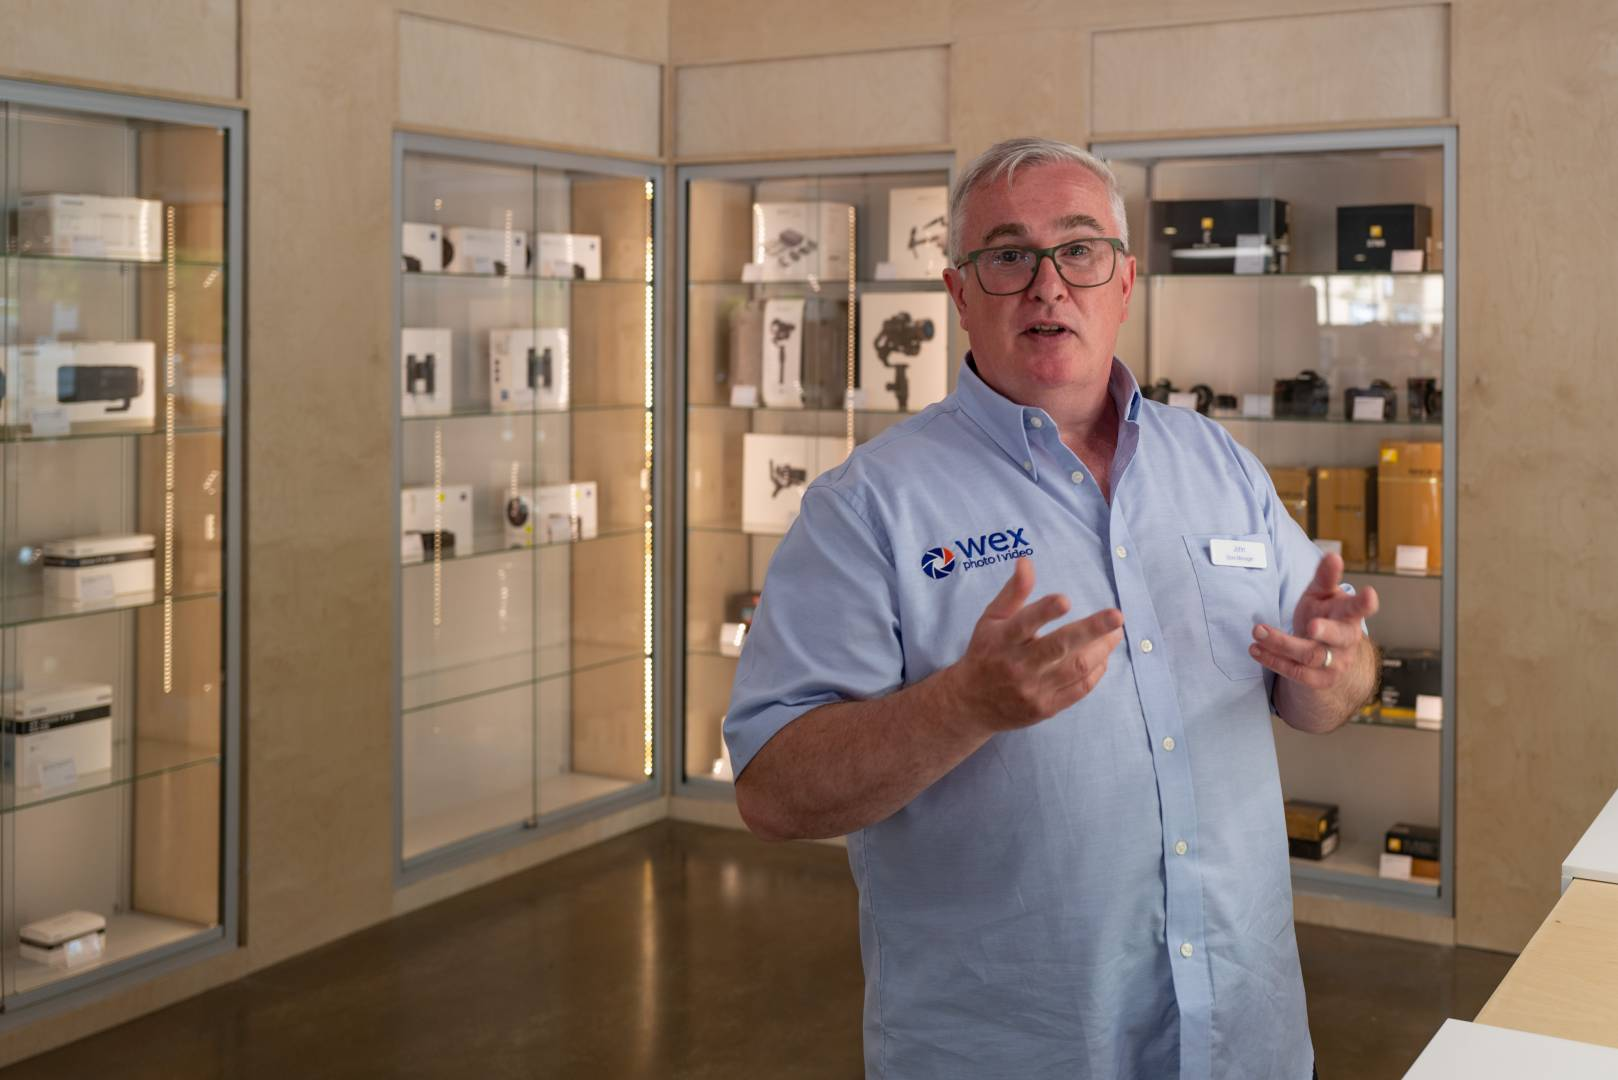 John Murphy, the manager of the new Wex store, waiting for new stock to filter through. John is known to many readers from his time with Leica UK, including his management of the Leica Store Mayfair.